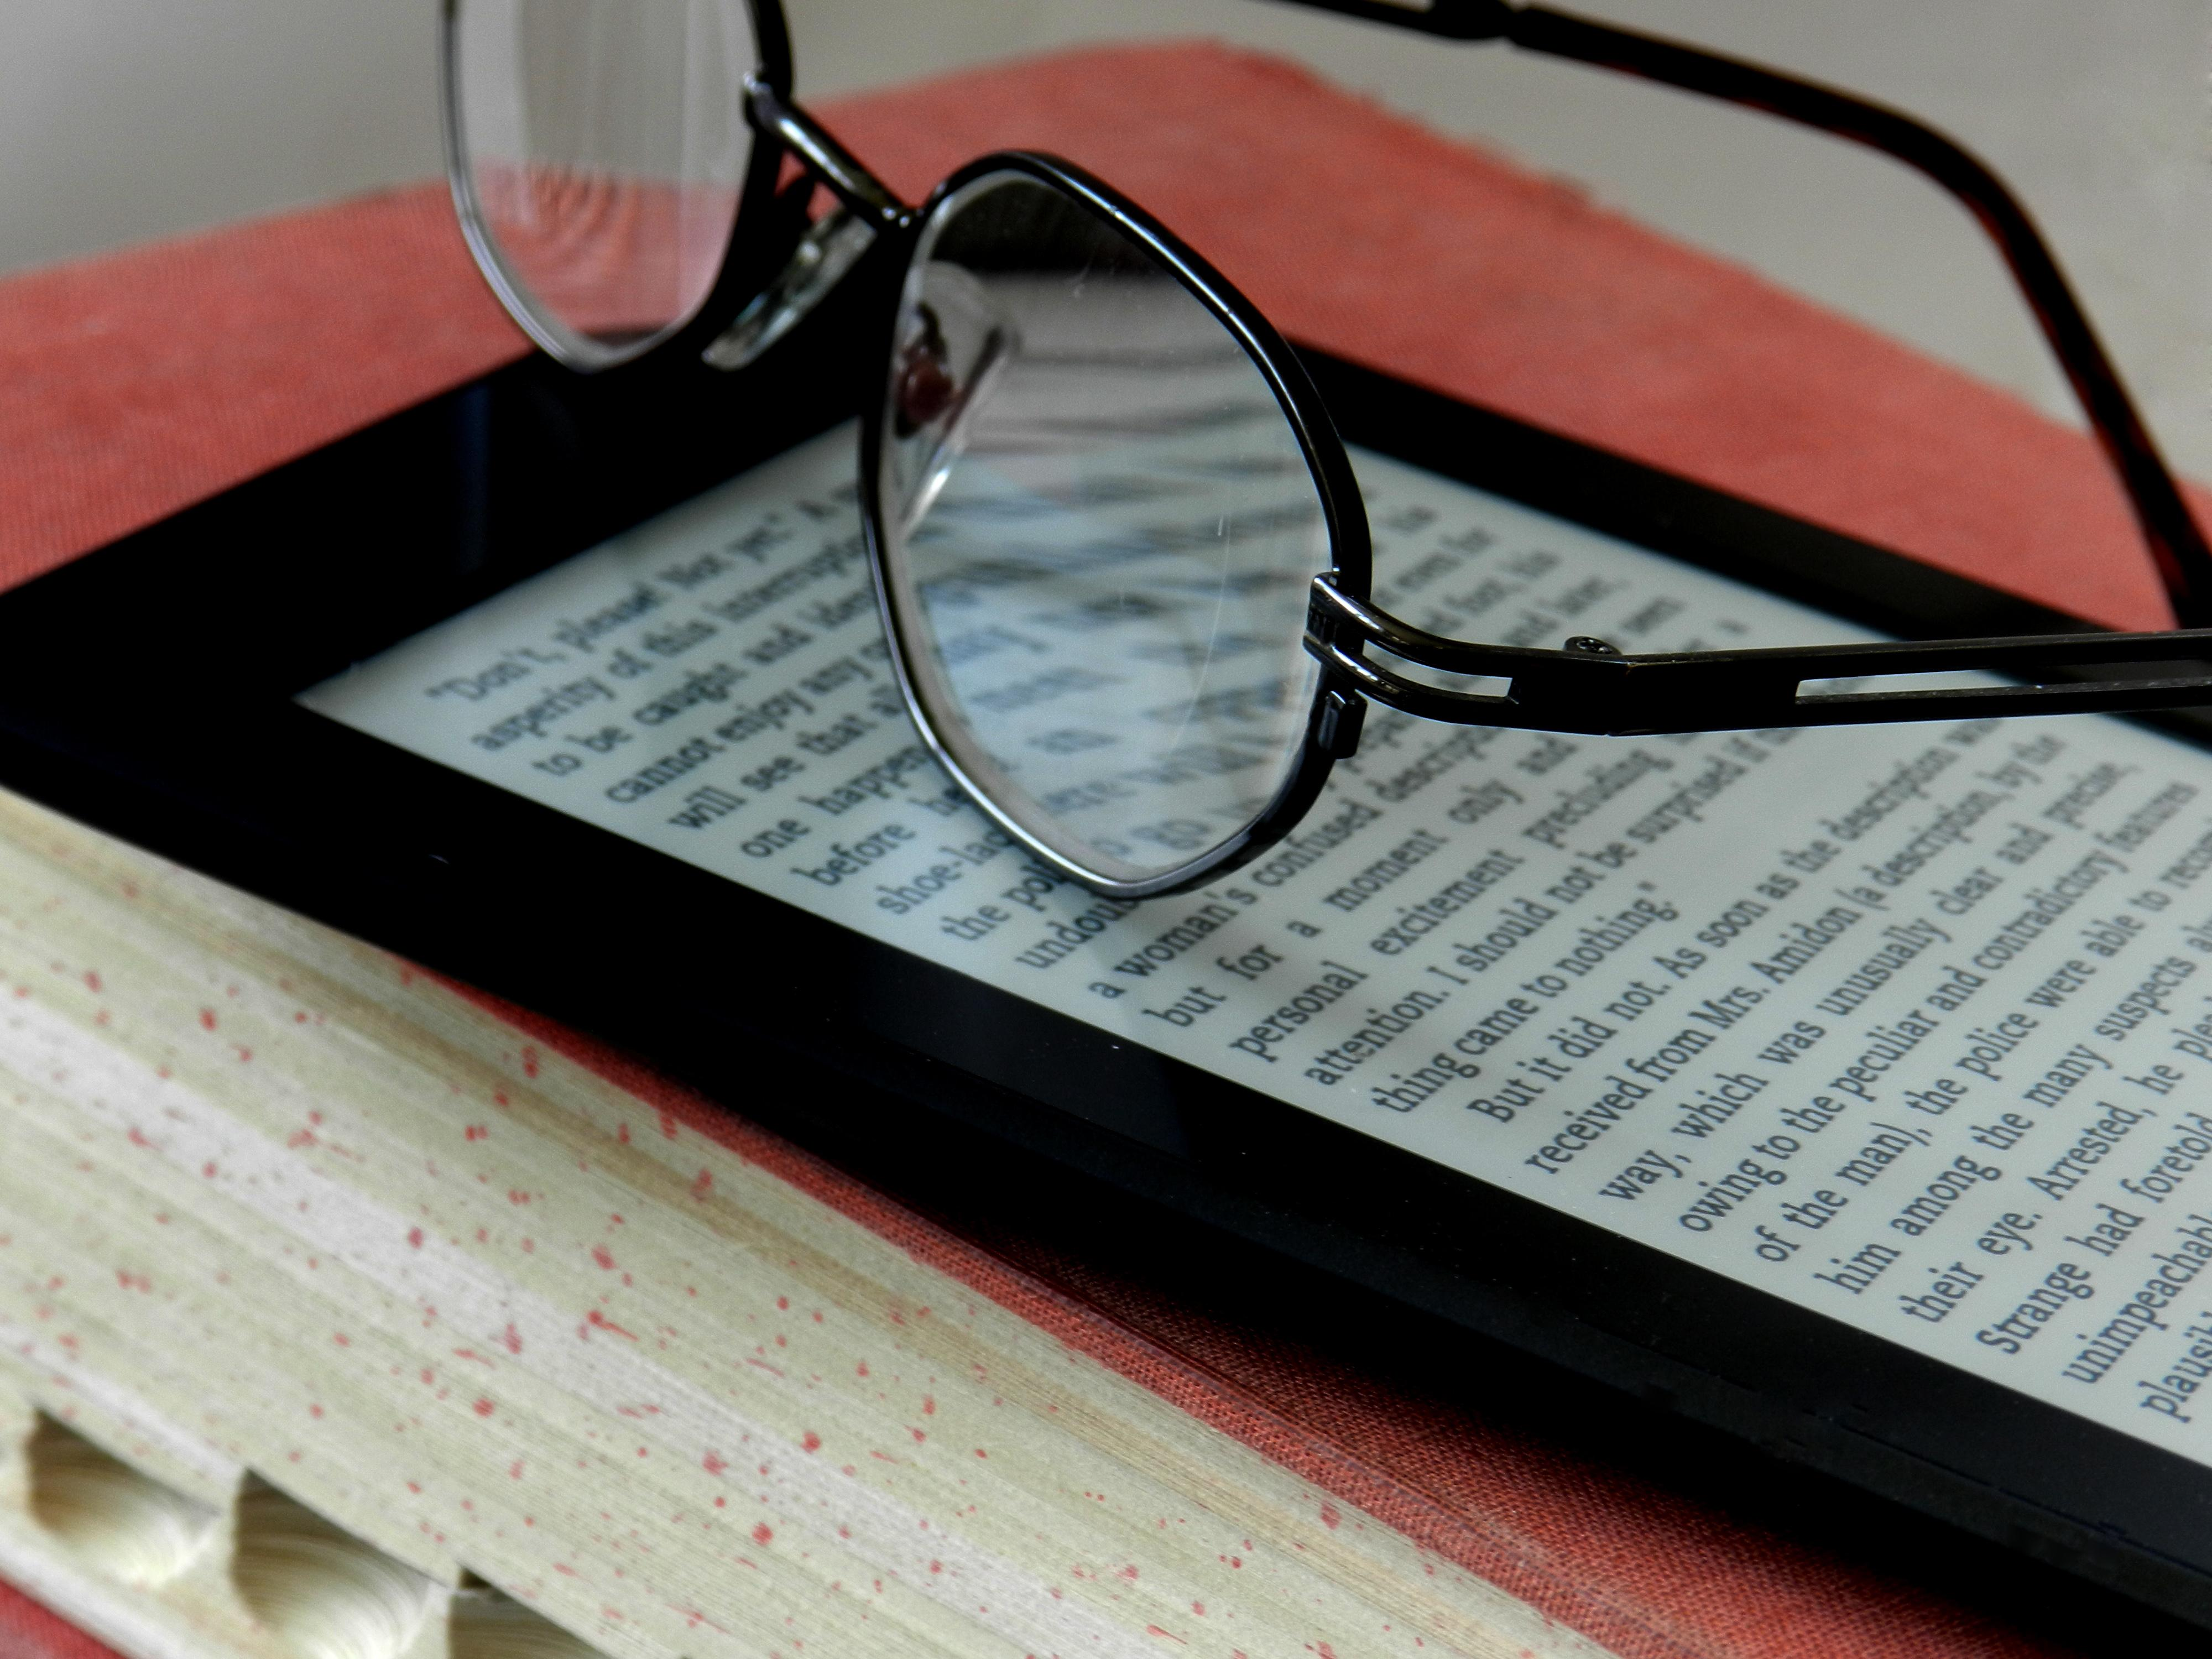 E-reader with glasses on top